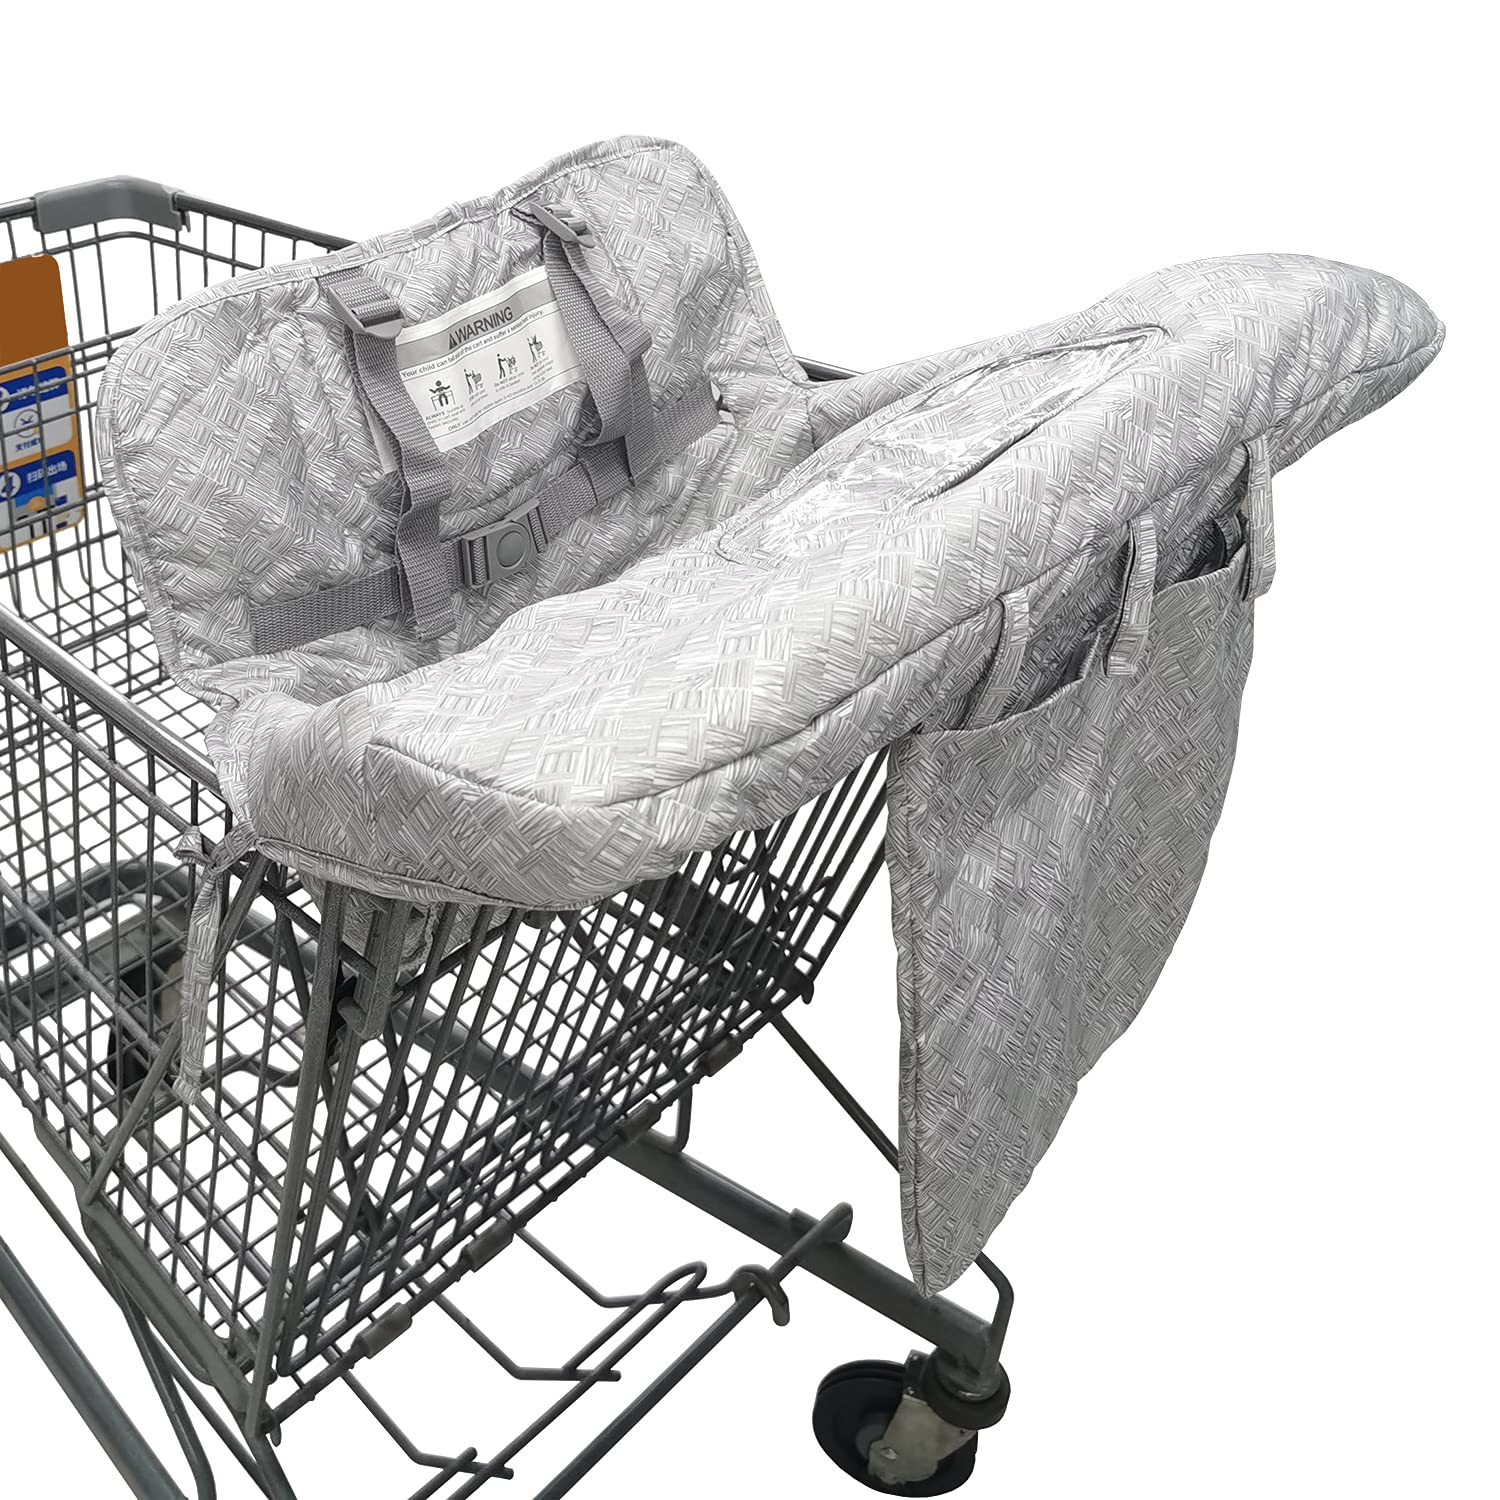 Shopping Cart Cover for Baby Boys and Girls, Babies Shopping Cart Seat Cover, High Chair Cover for Babies - Grey